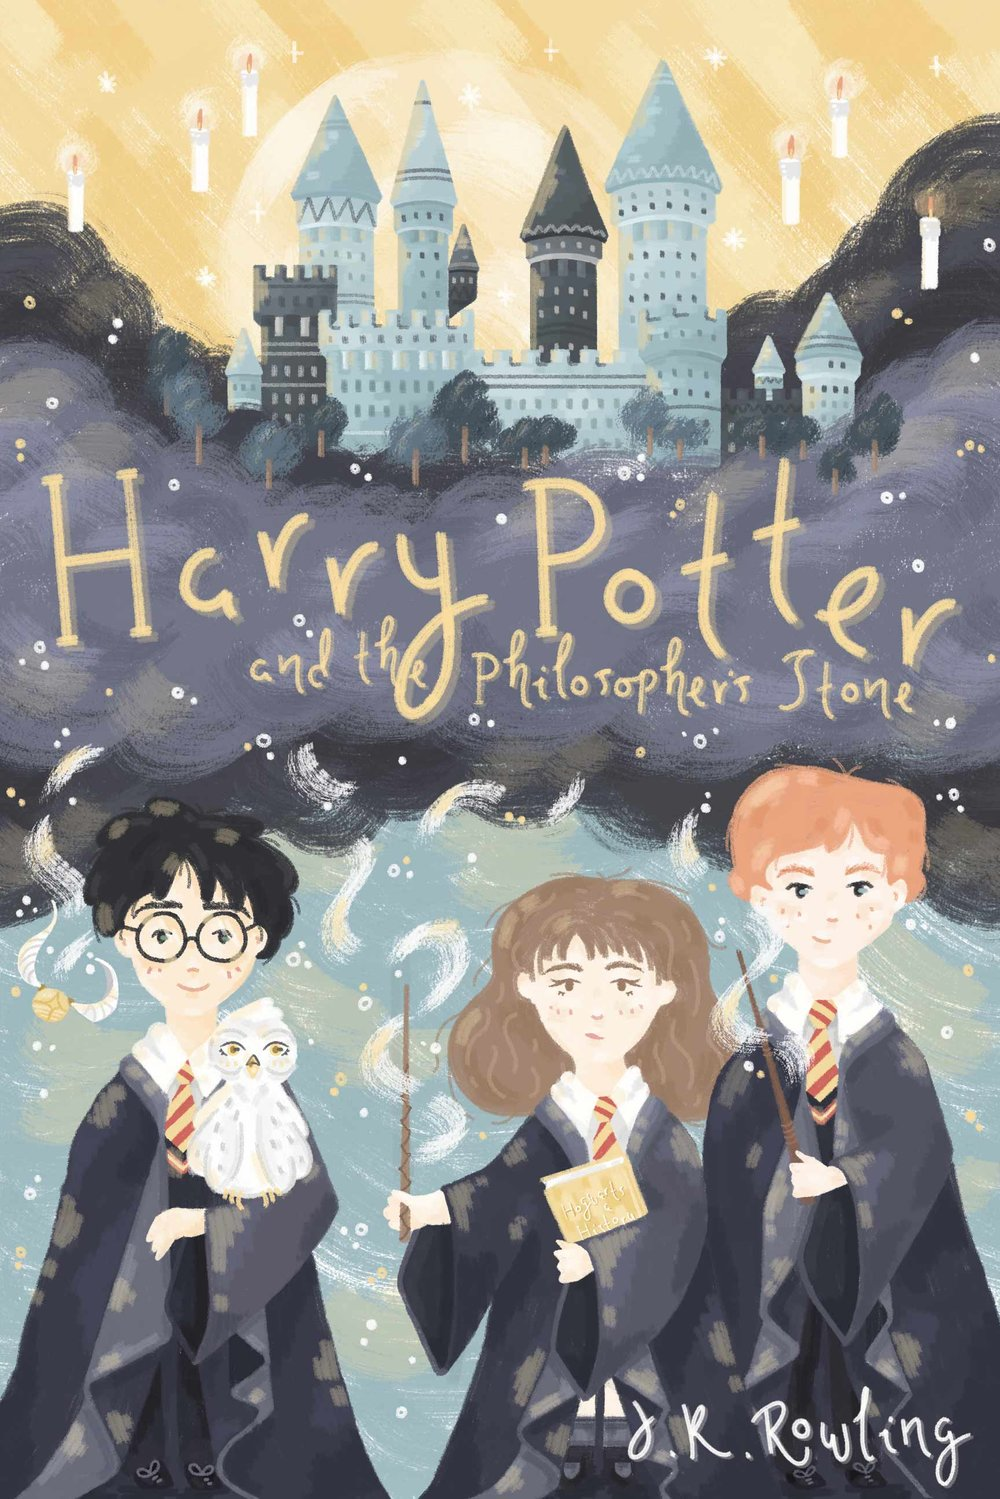 Harry Potter book cover design, with Harry, Ron and Hermione, Hogwarts in the background.